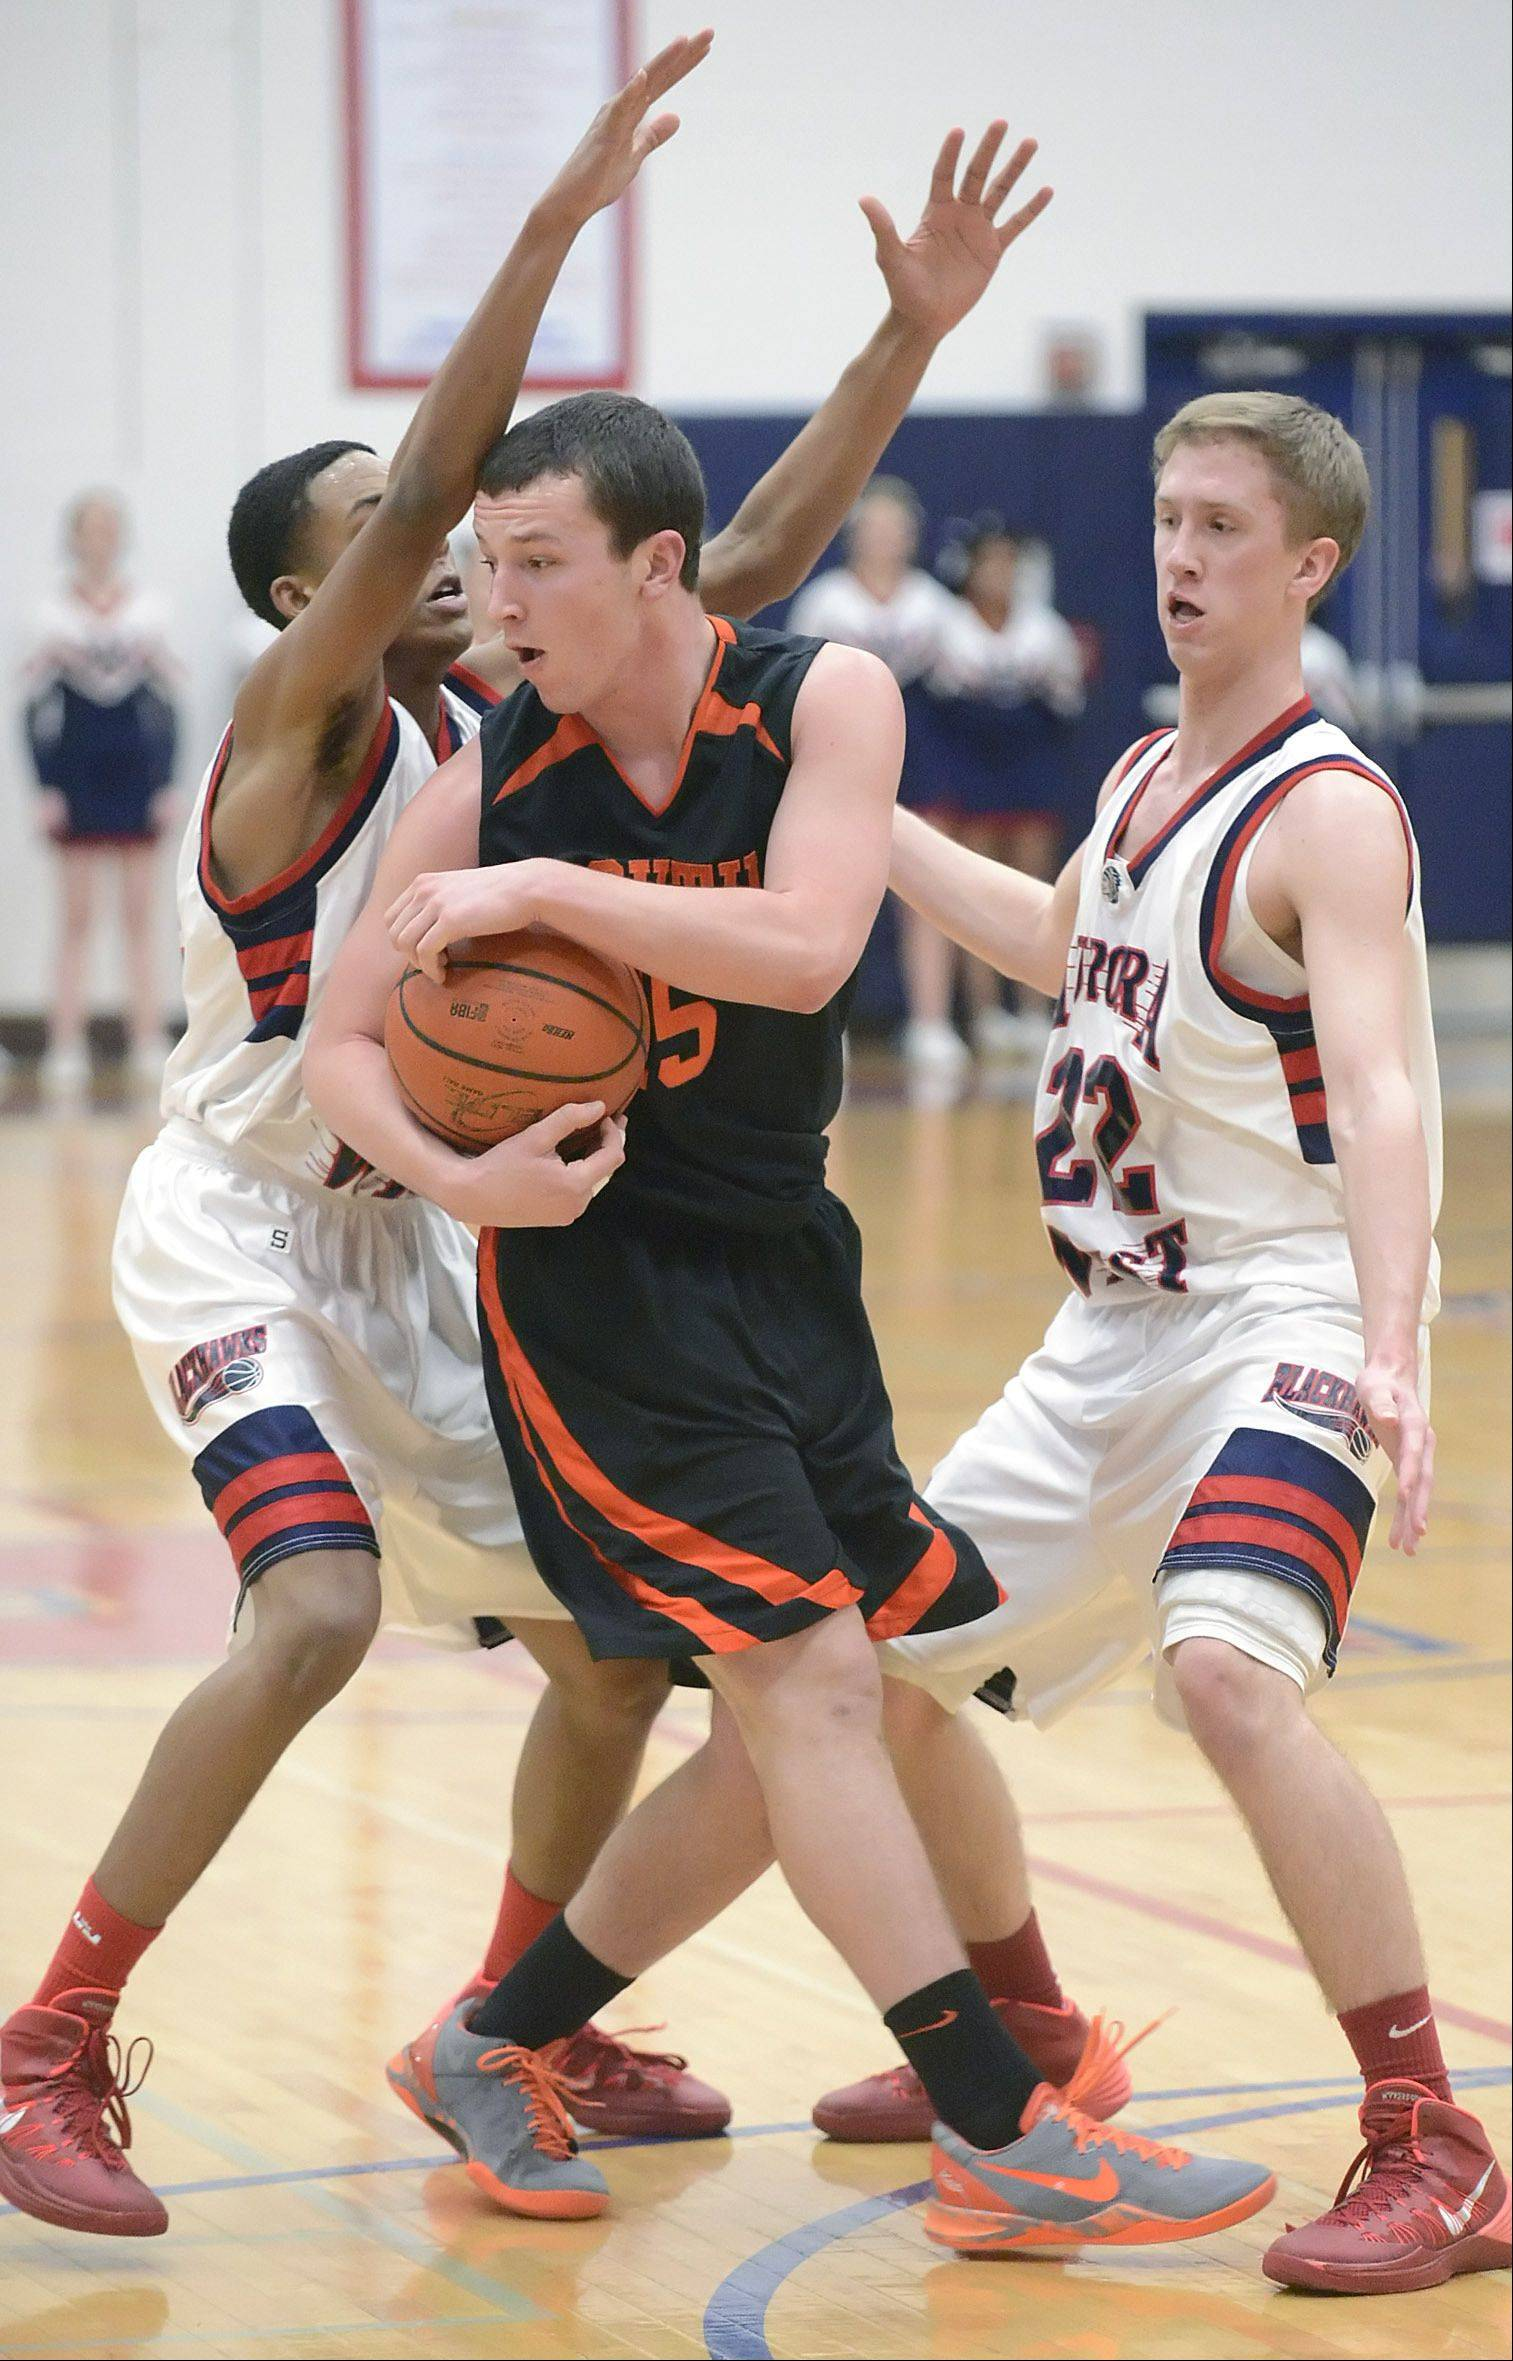 Wheaton Warrenville South's Joe Metzger is swarmed by West Aurora's Antwan Ahamd, left, and Tommy Koth, right, in the third quarter.